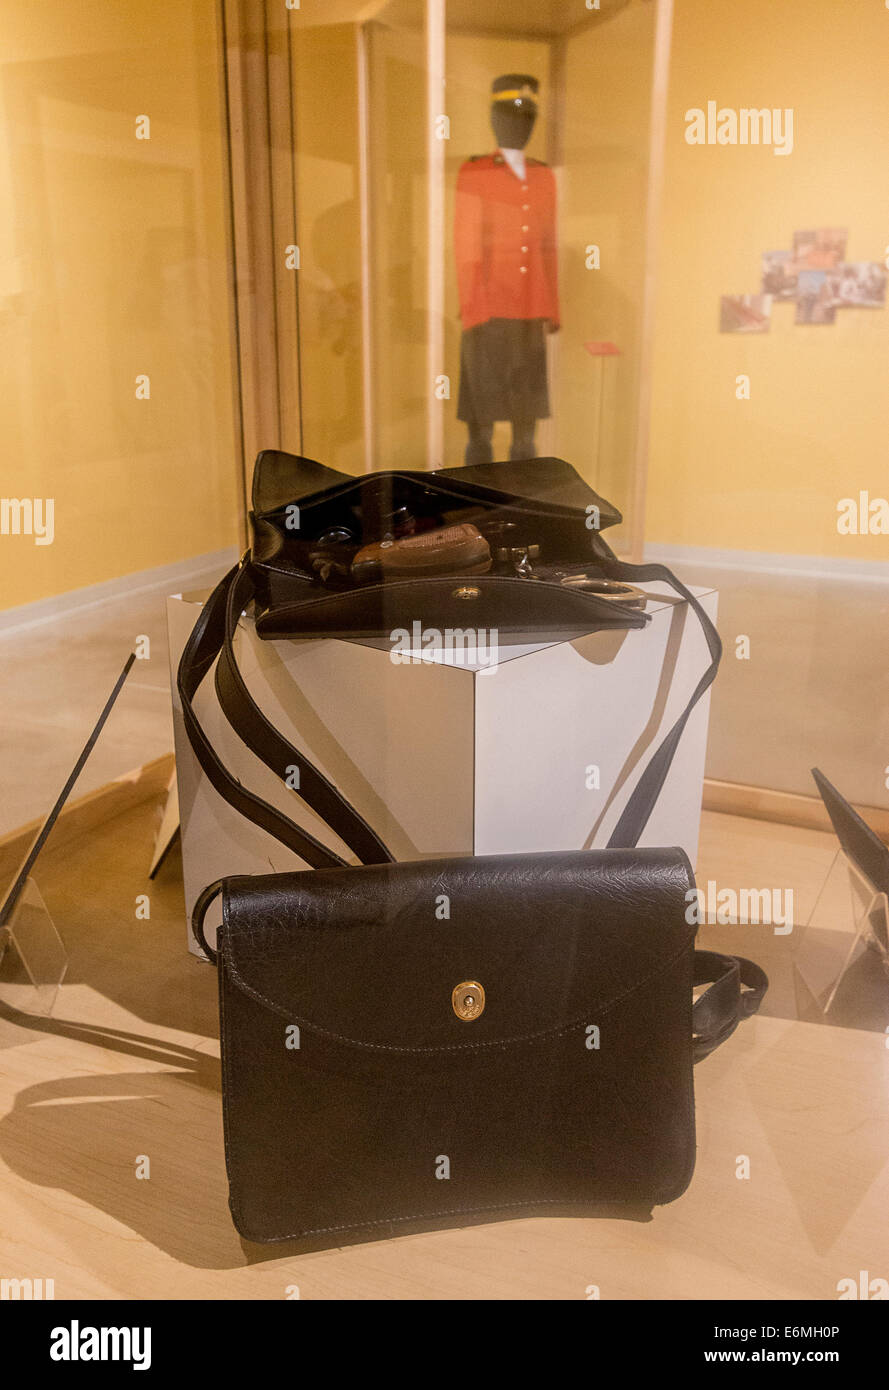 Official purse issued to women Mounties after they were initially allowed to become RCMP officers in 1974. - Stock Image